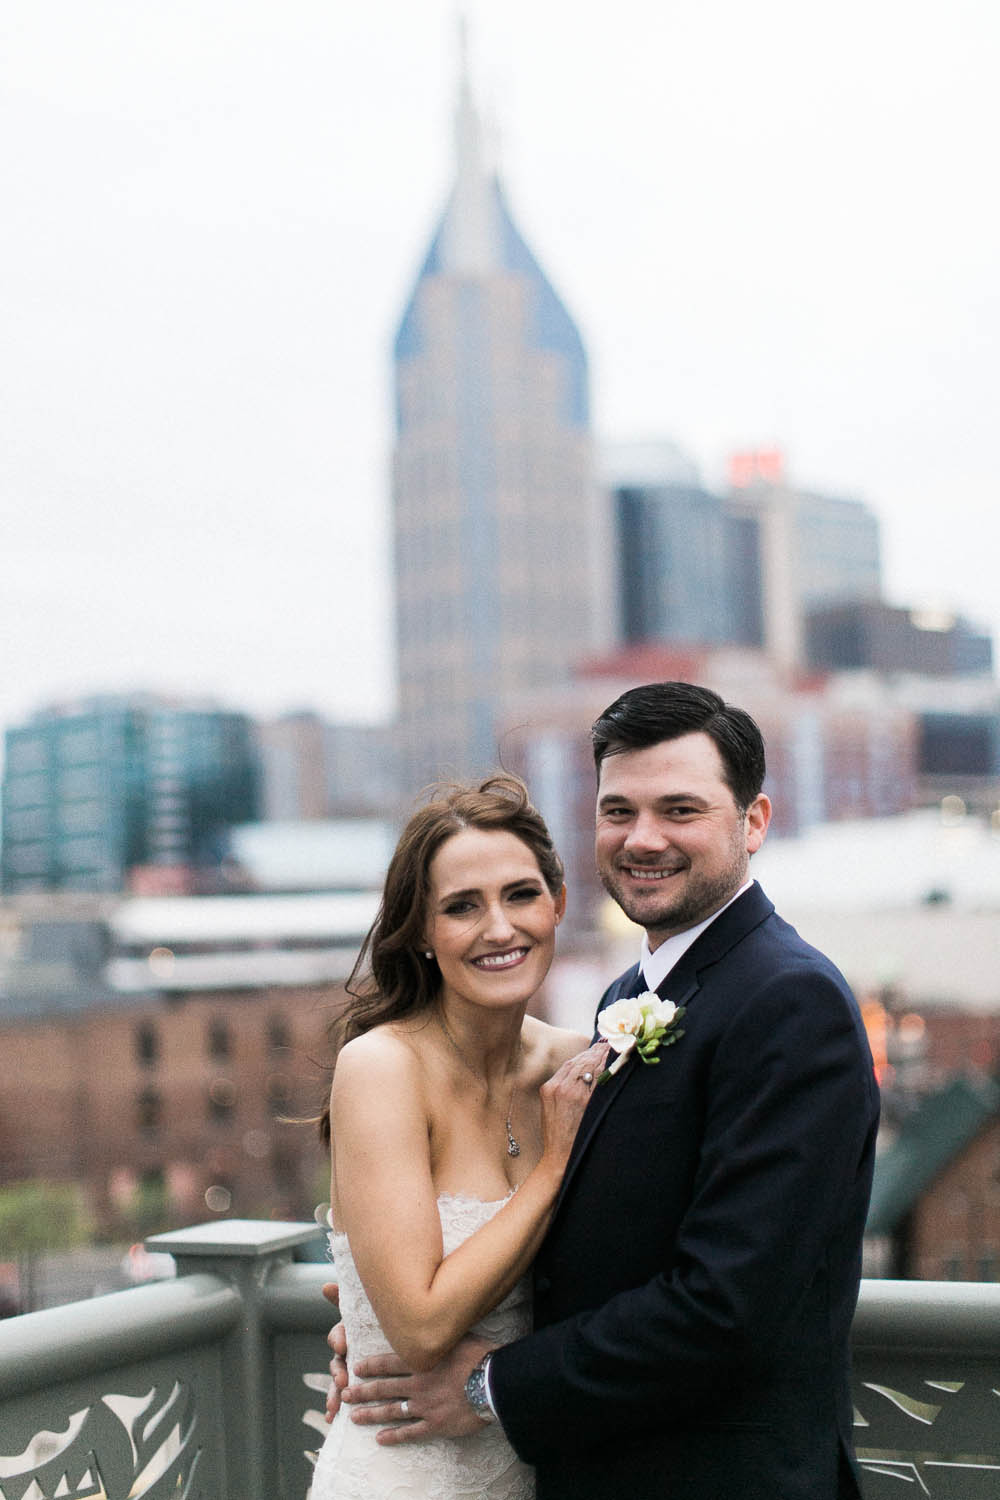 a nashville downtown aVenue wedding photographers documentary natural real moments ©2016abigailbobophotography-1.jpg